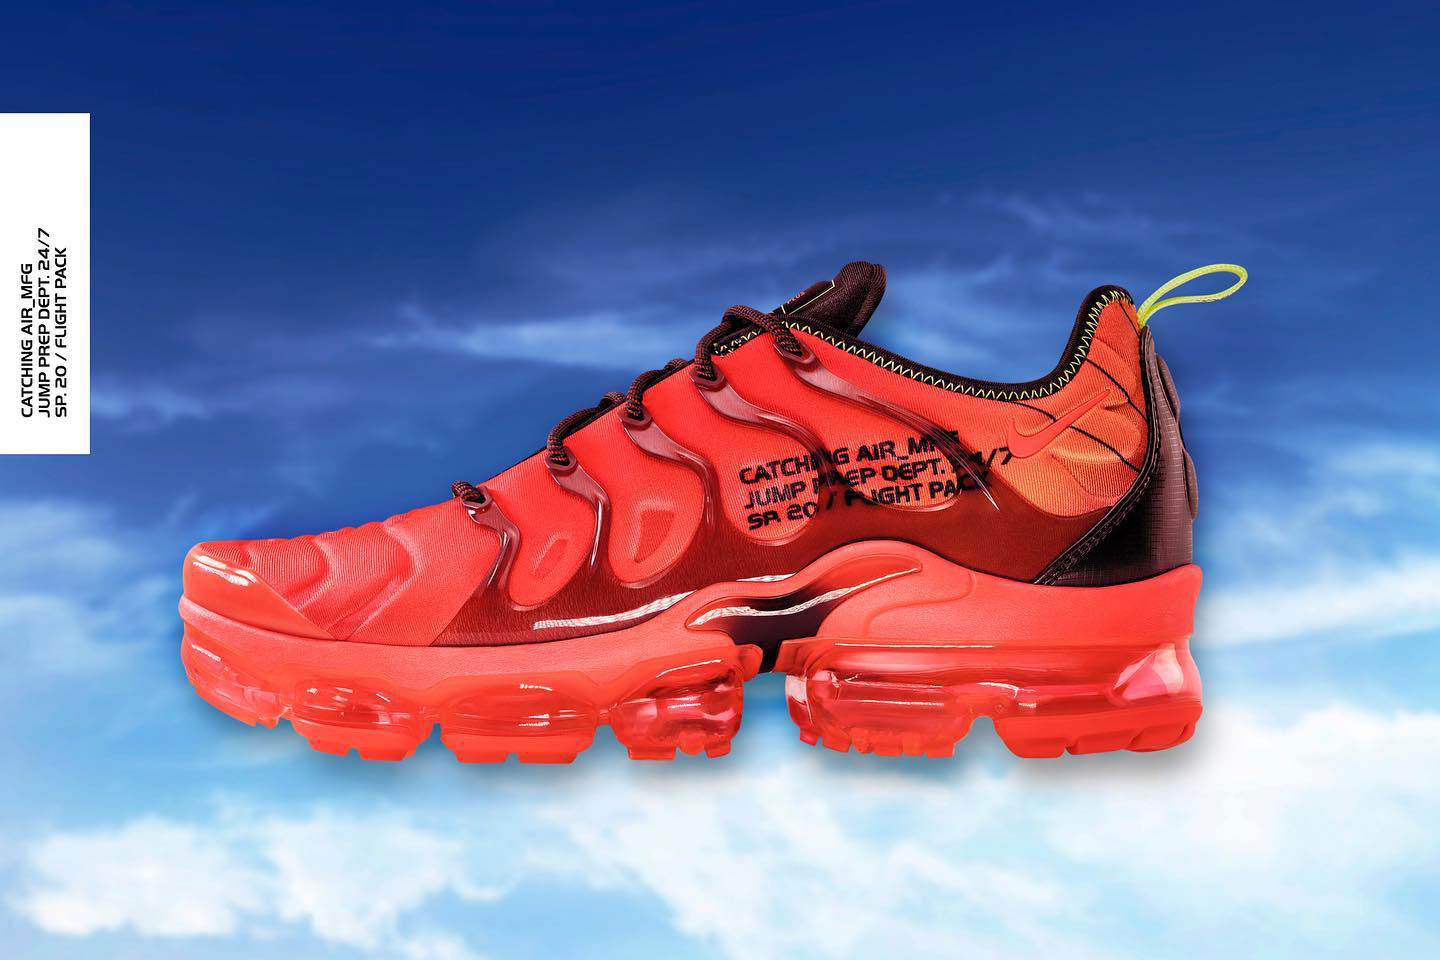 nike-air-vapormax-plus-catching-air-parachute